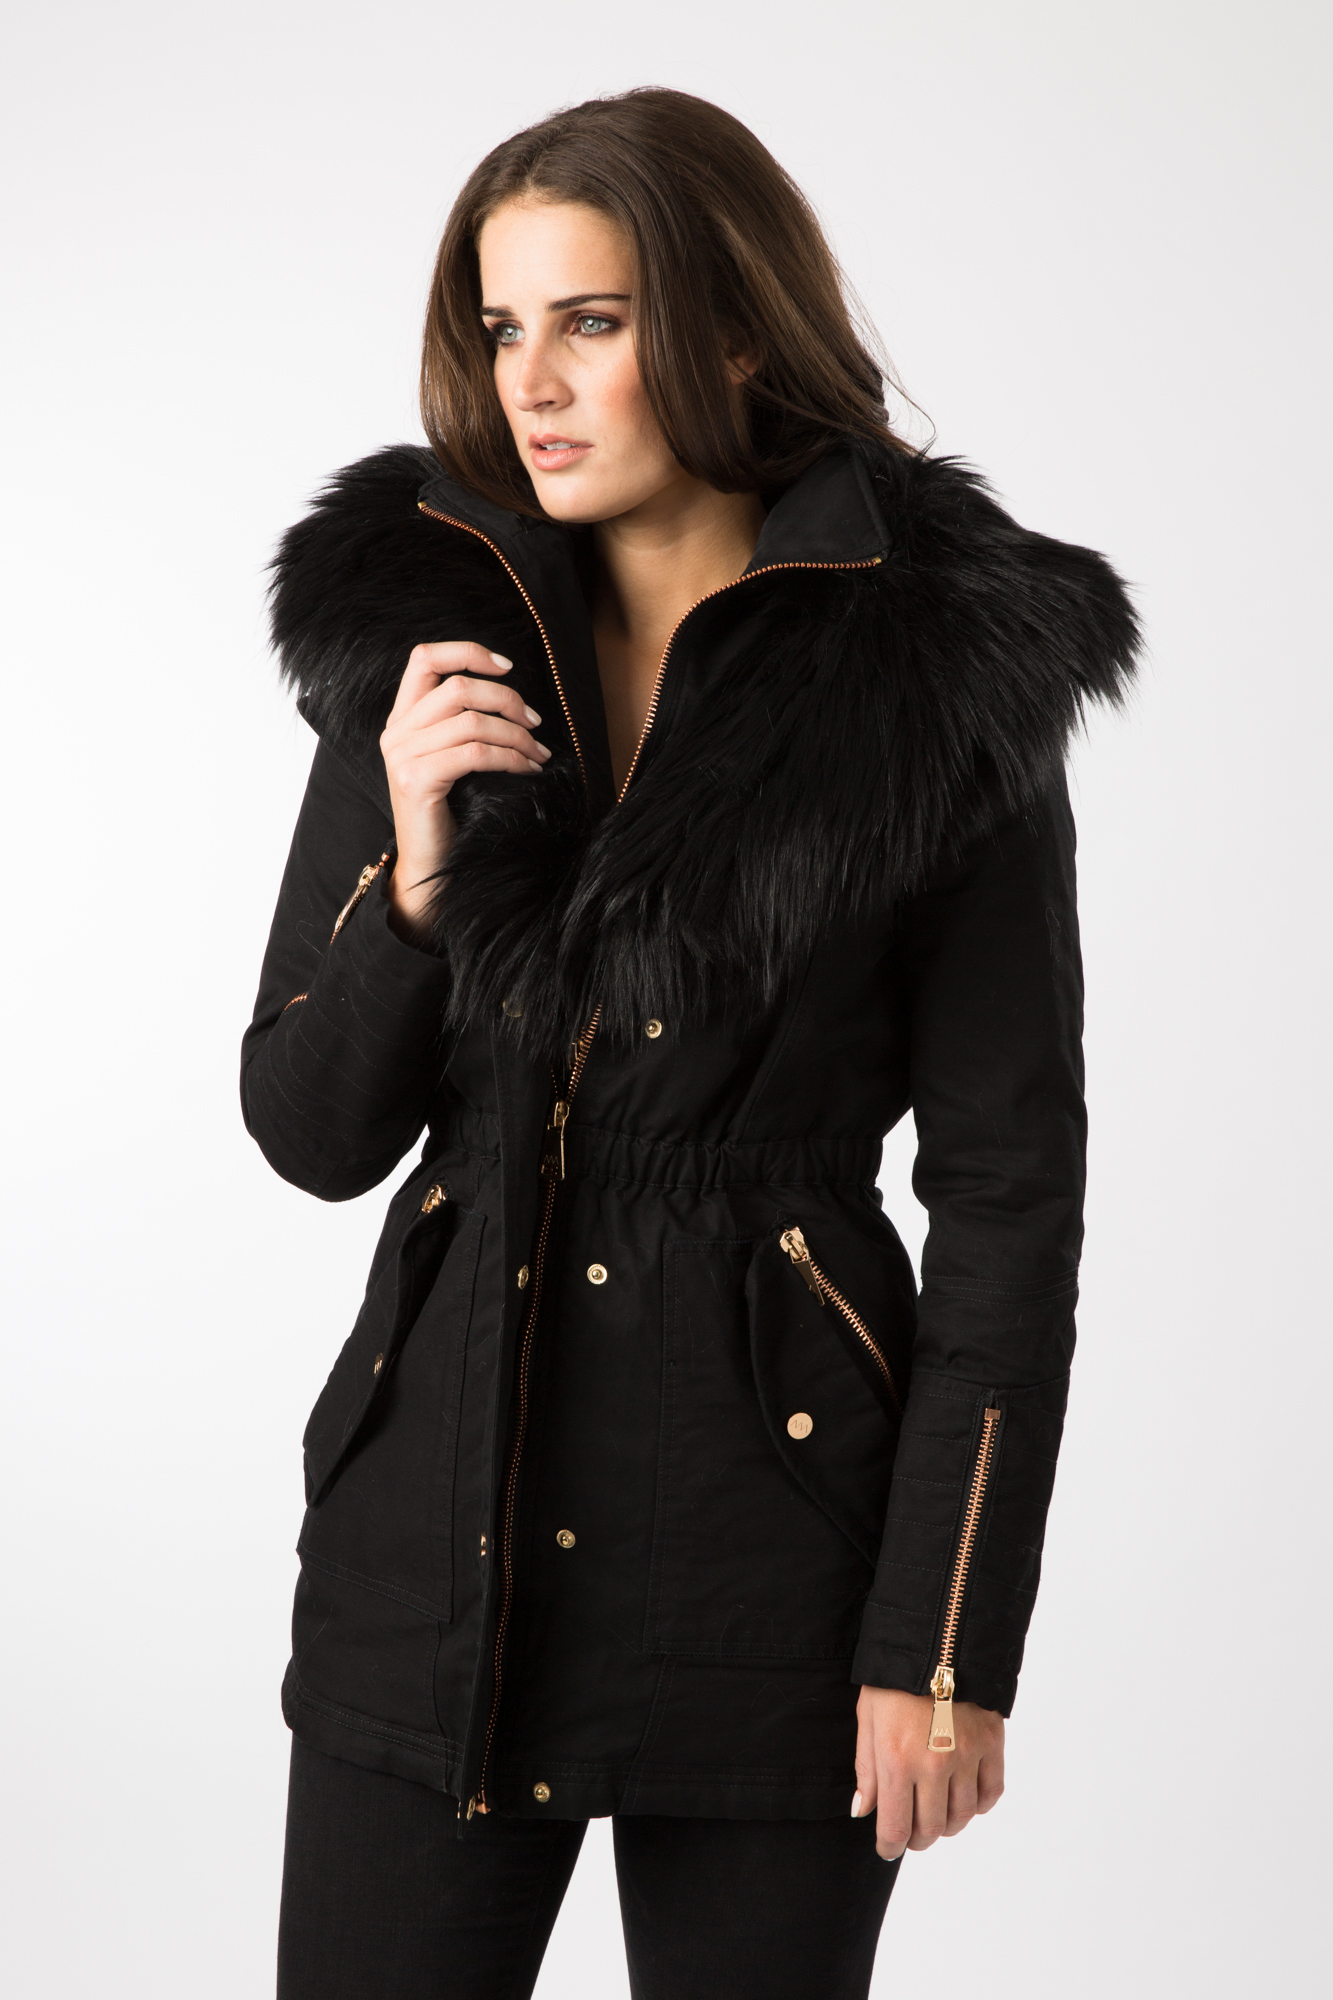 Black Parka Coat With Fur Hood | Fashion Women's Coat 2017